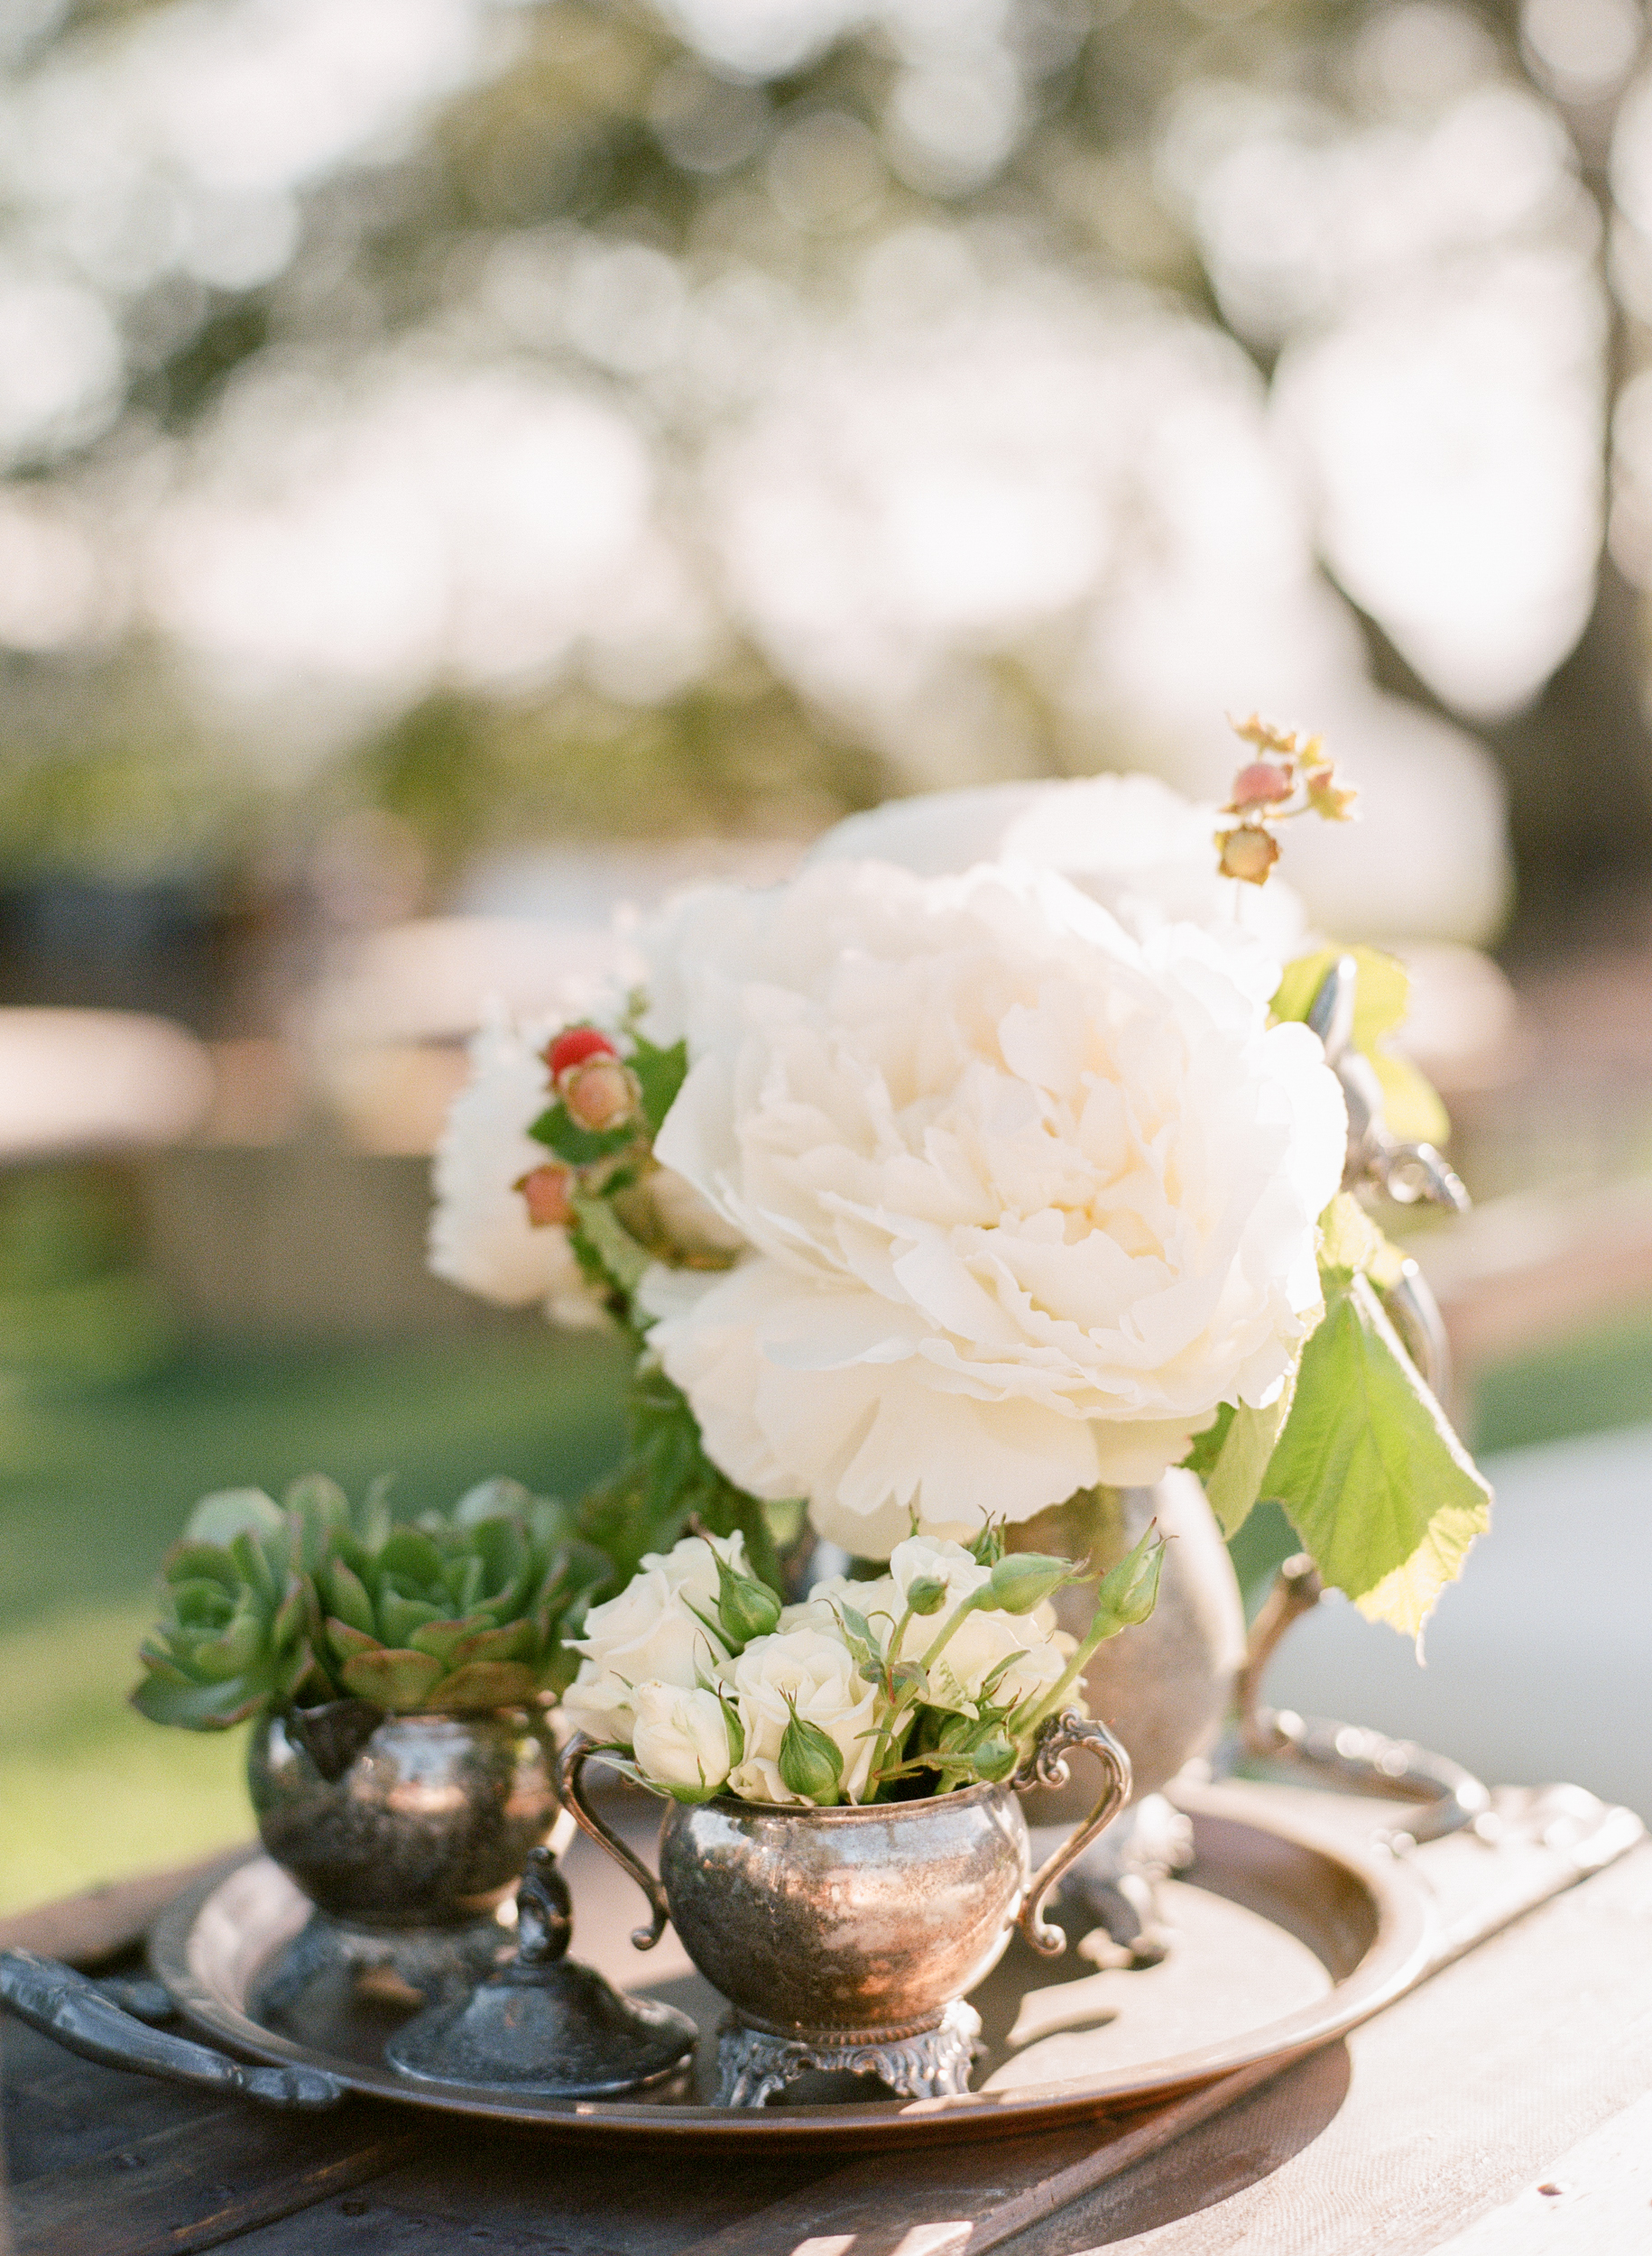 Sylvie-Gil-film-destination-wedding-photography-kunde-winery-napa-shabby-chic-florals